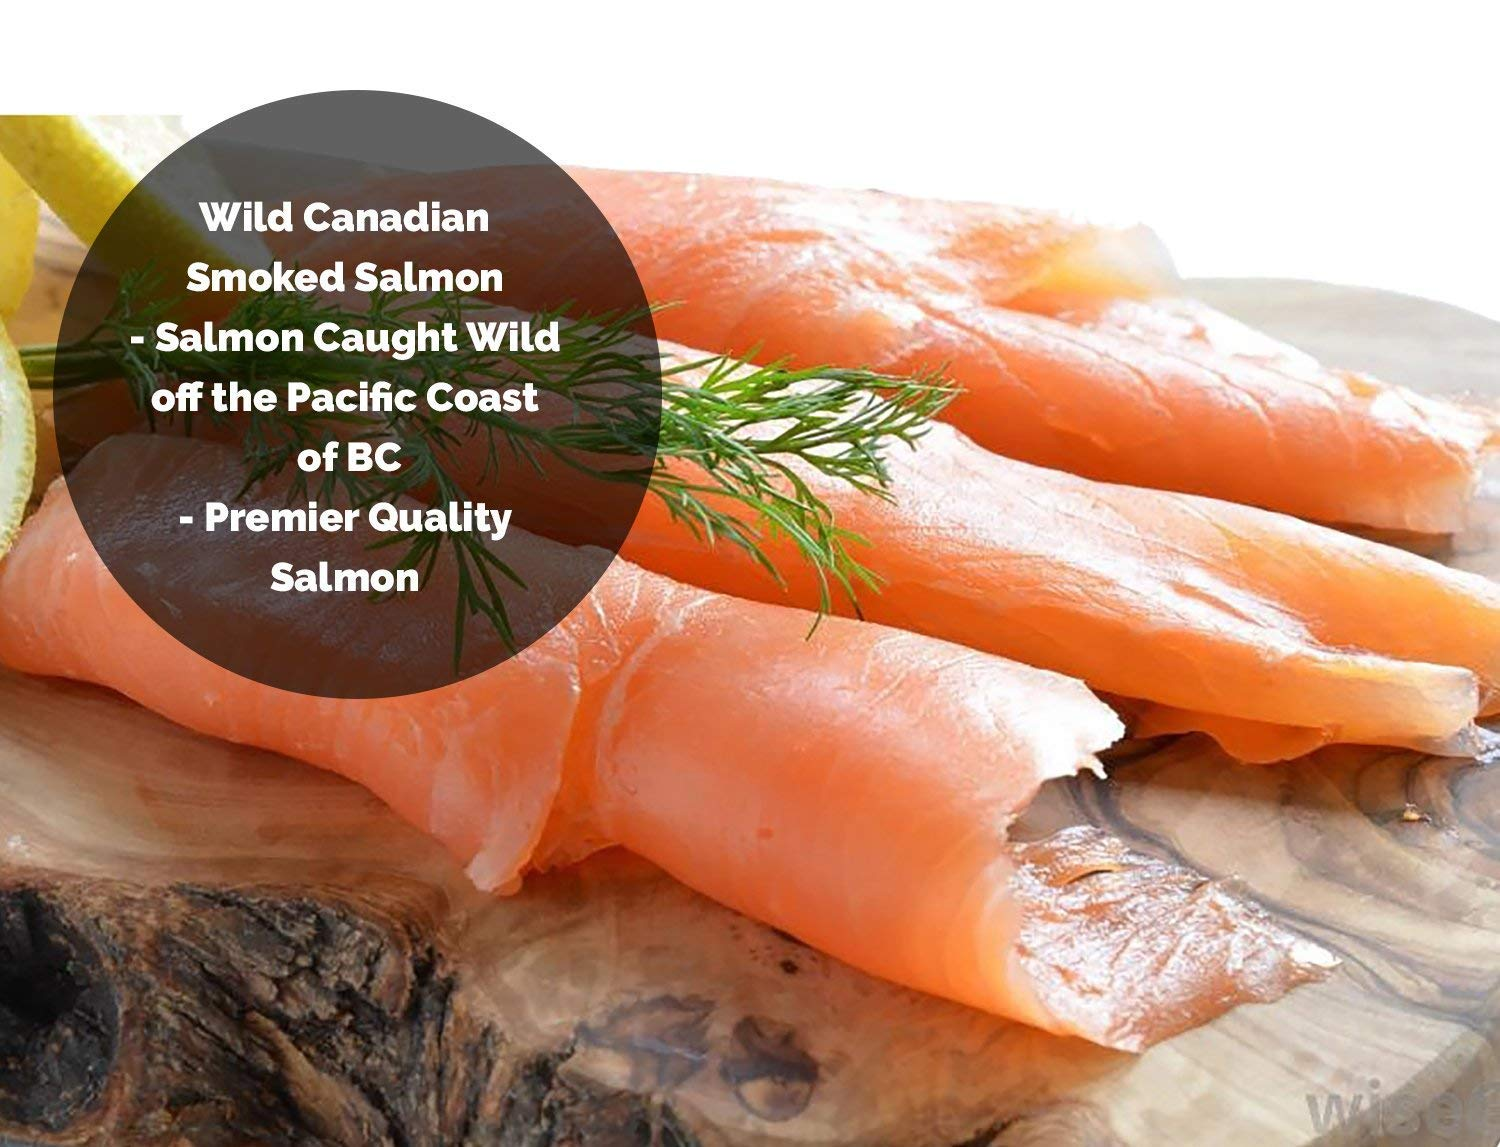 Smoked Salmon Sockeye Lox Cold Smoked Wild Caught Pacific Canadian Fish Sliced 32 oz by Jet Set Sam